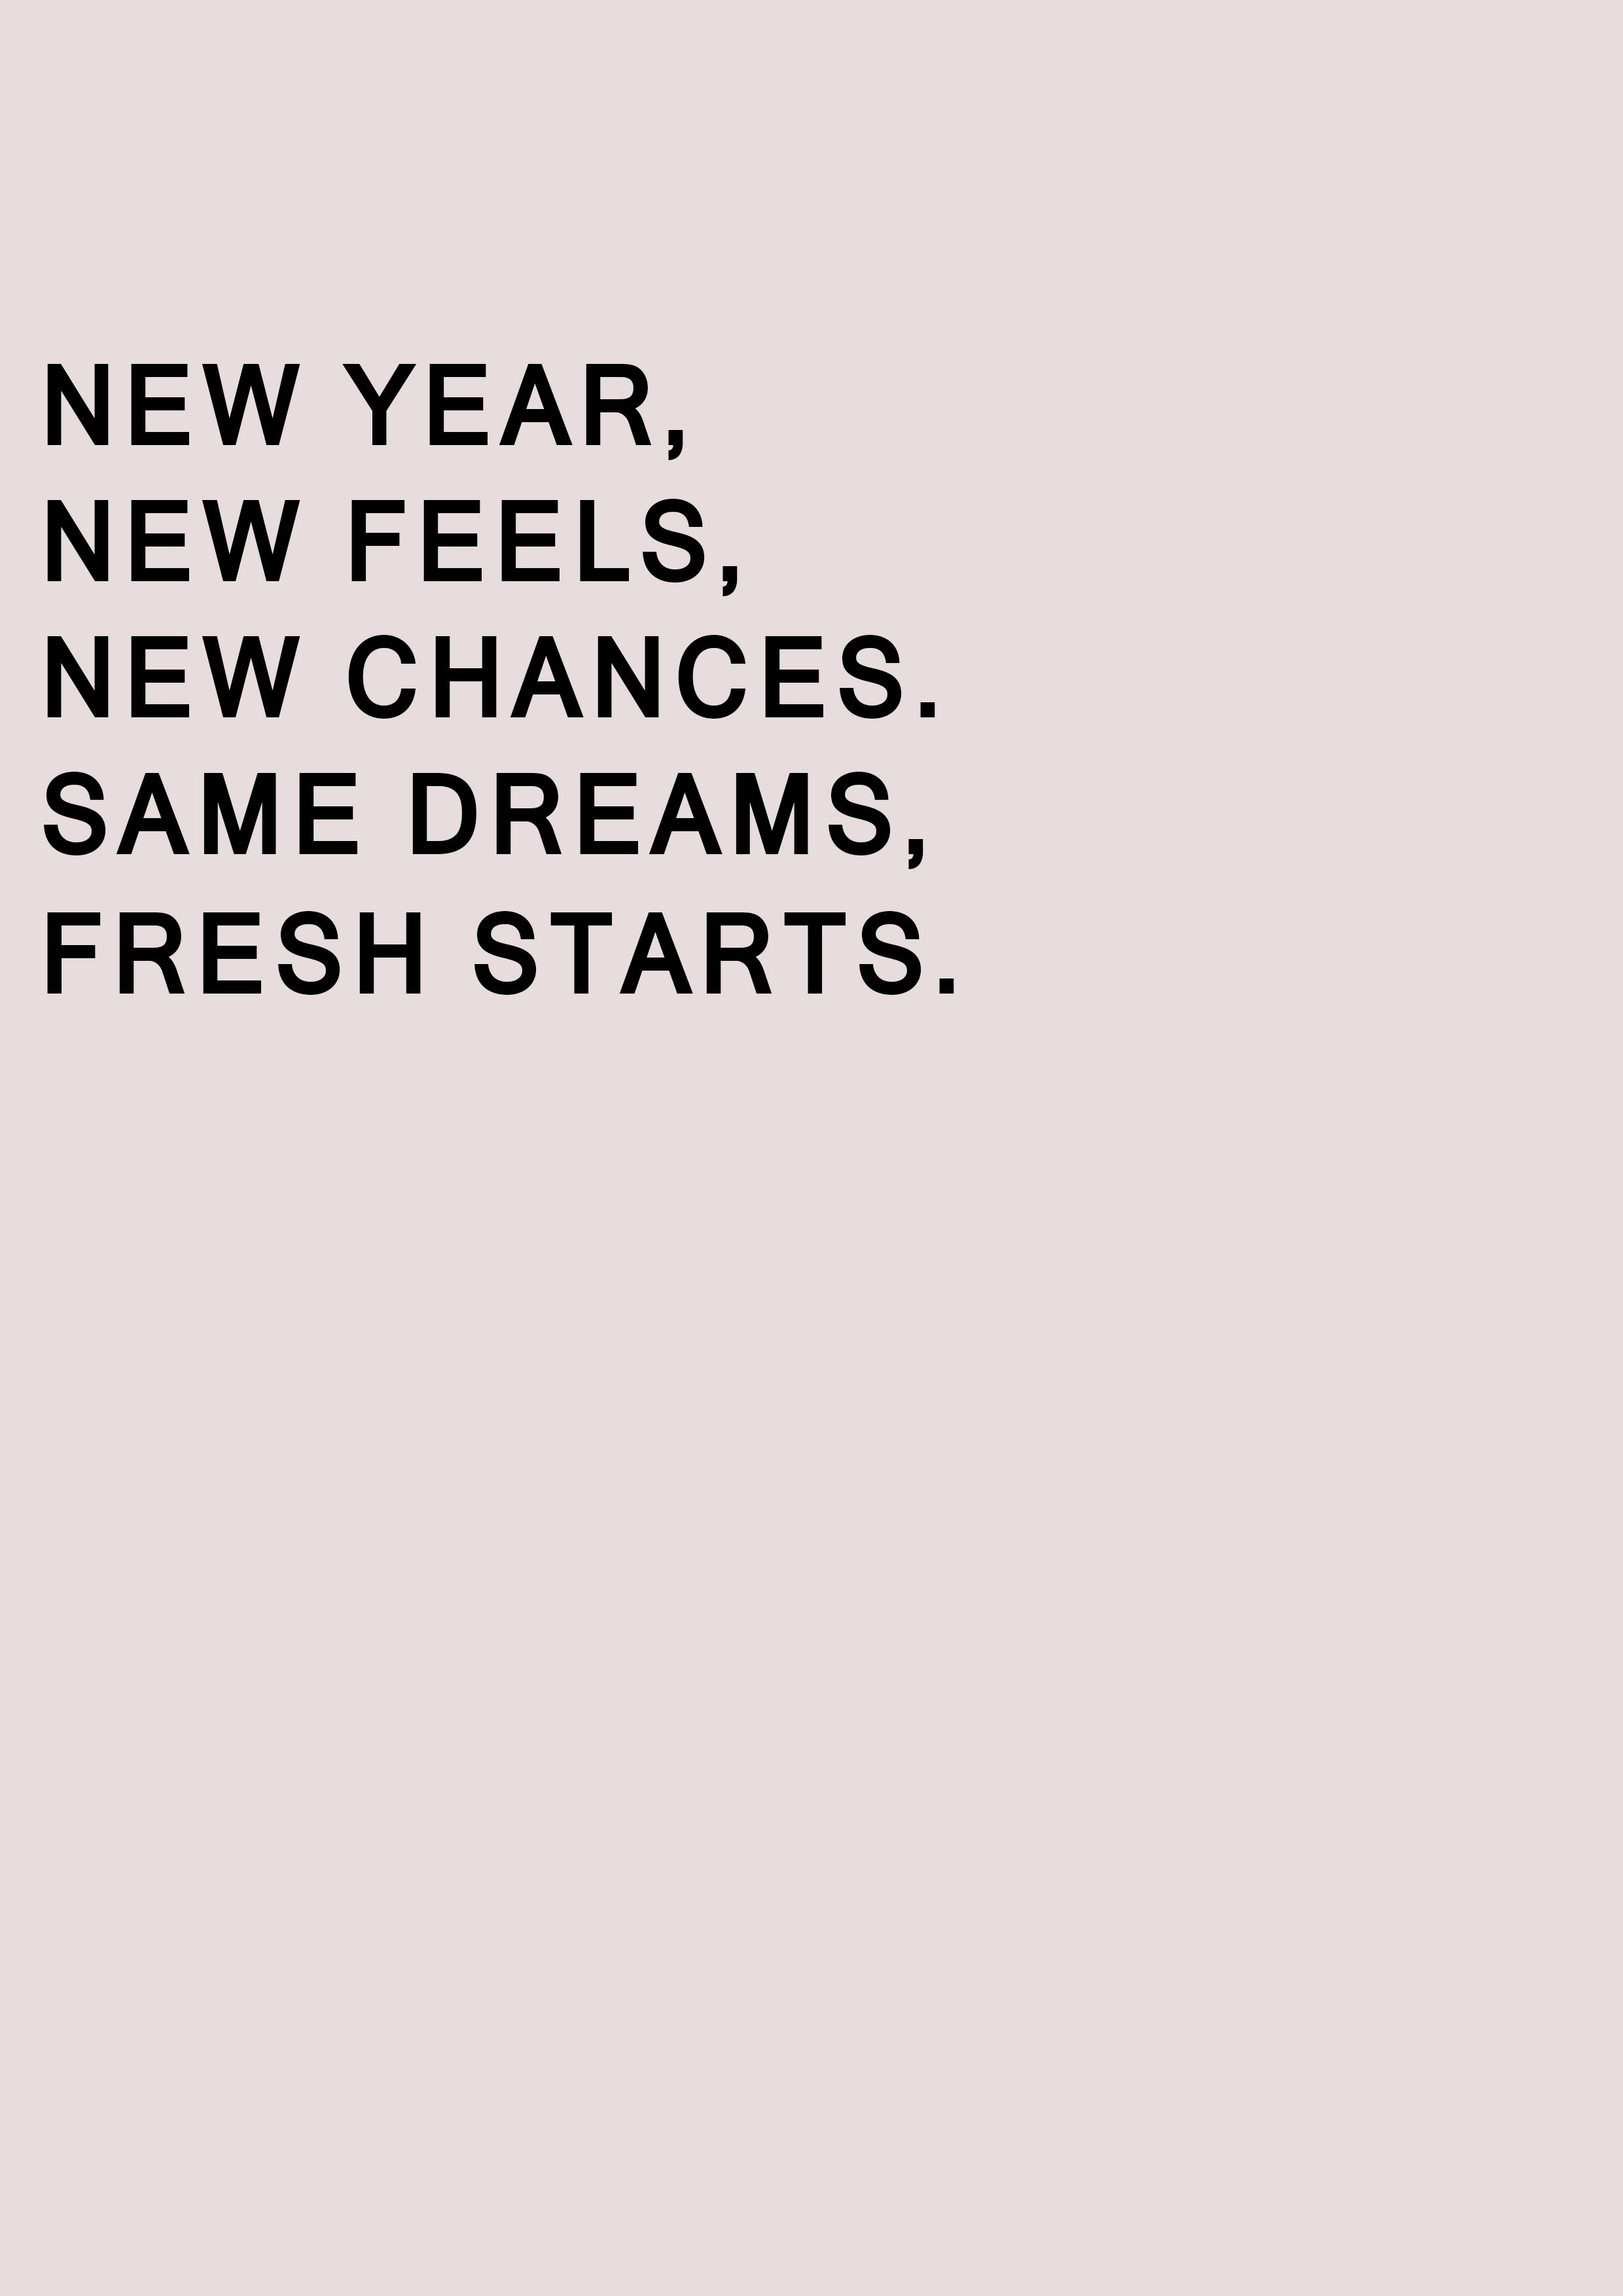 new year new feels new chances same dreams fresh starts